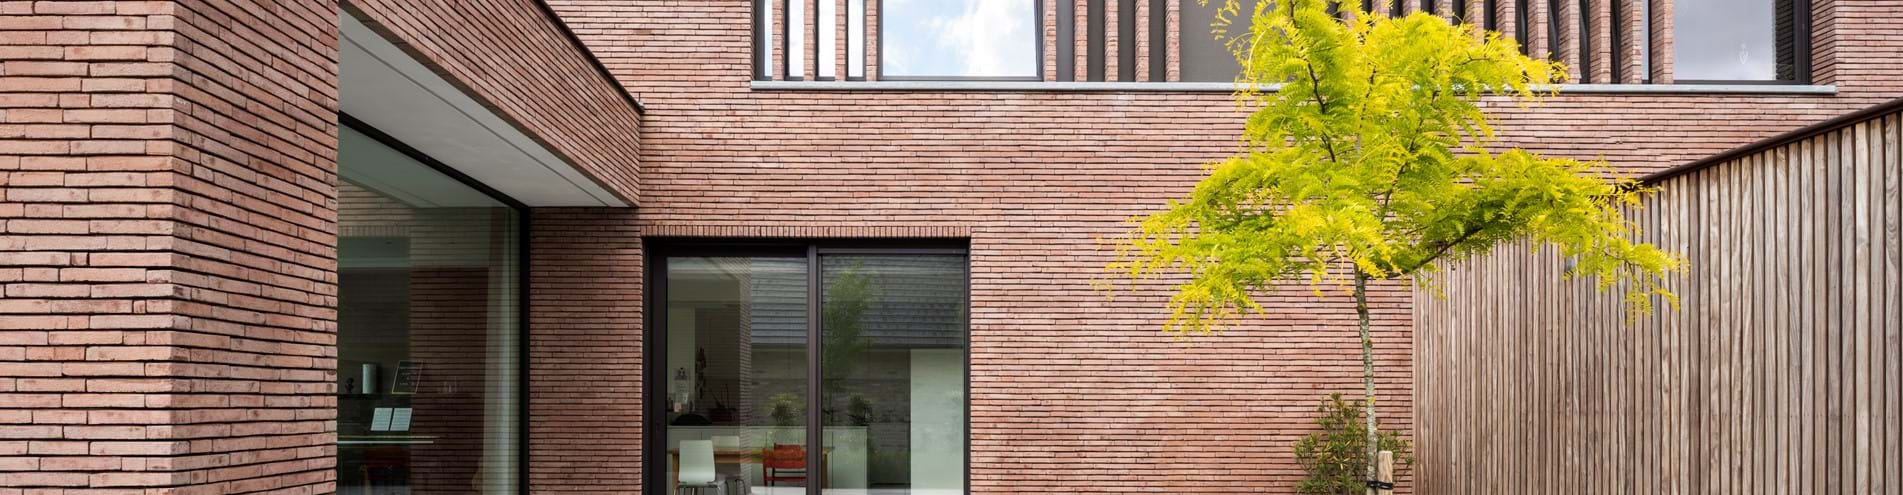 Vertical brick slats in linea7 8012 as an eye-catching feature